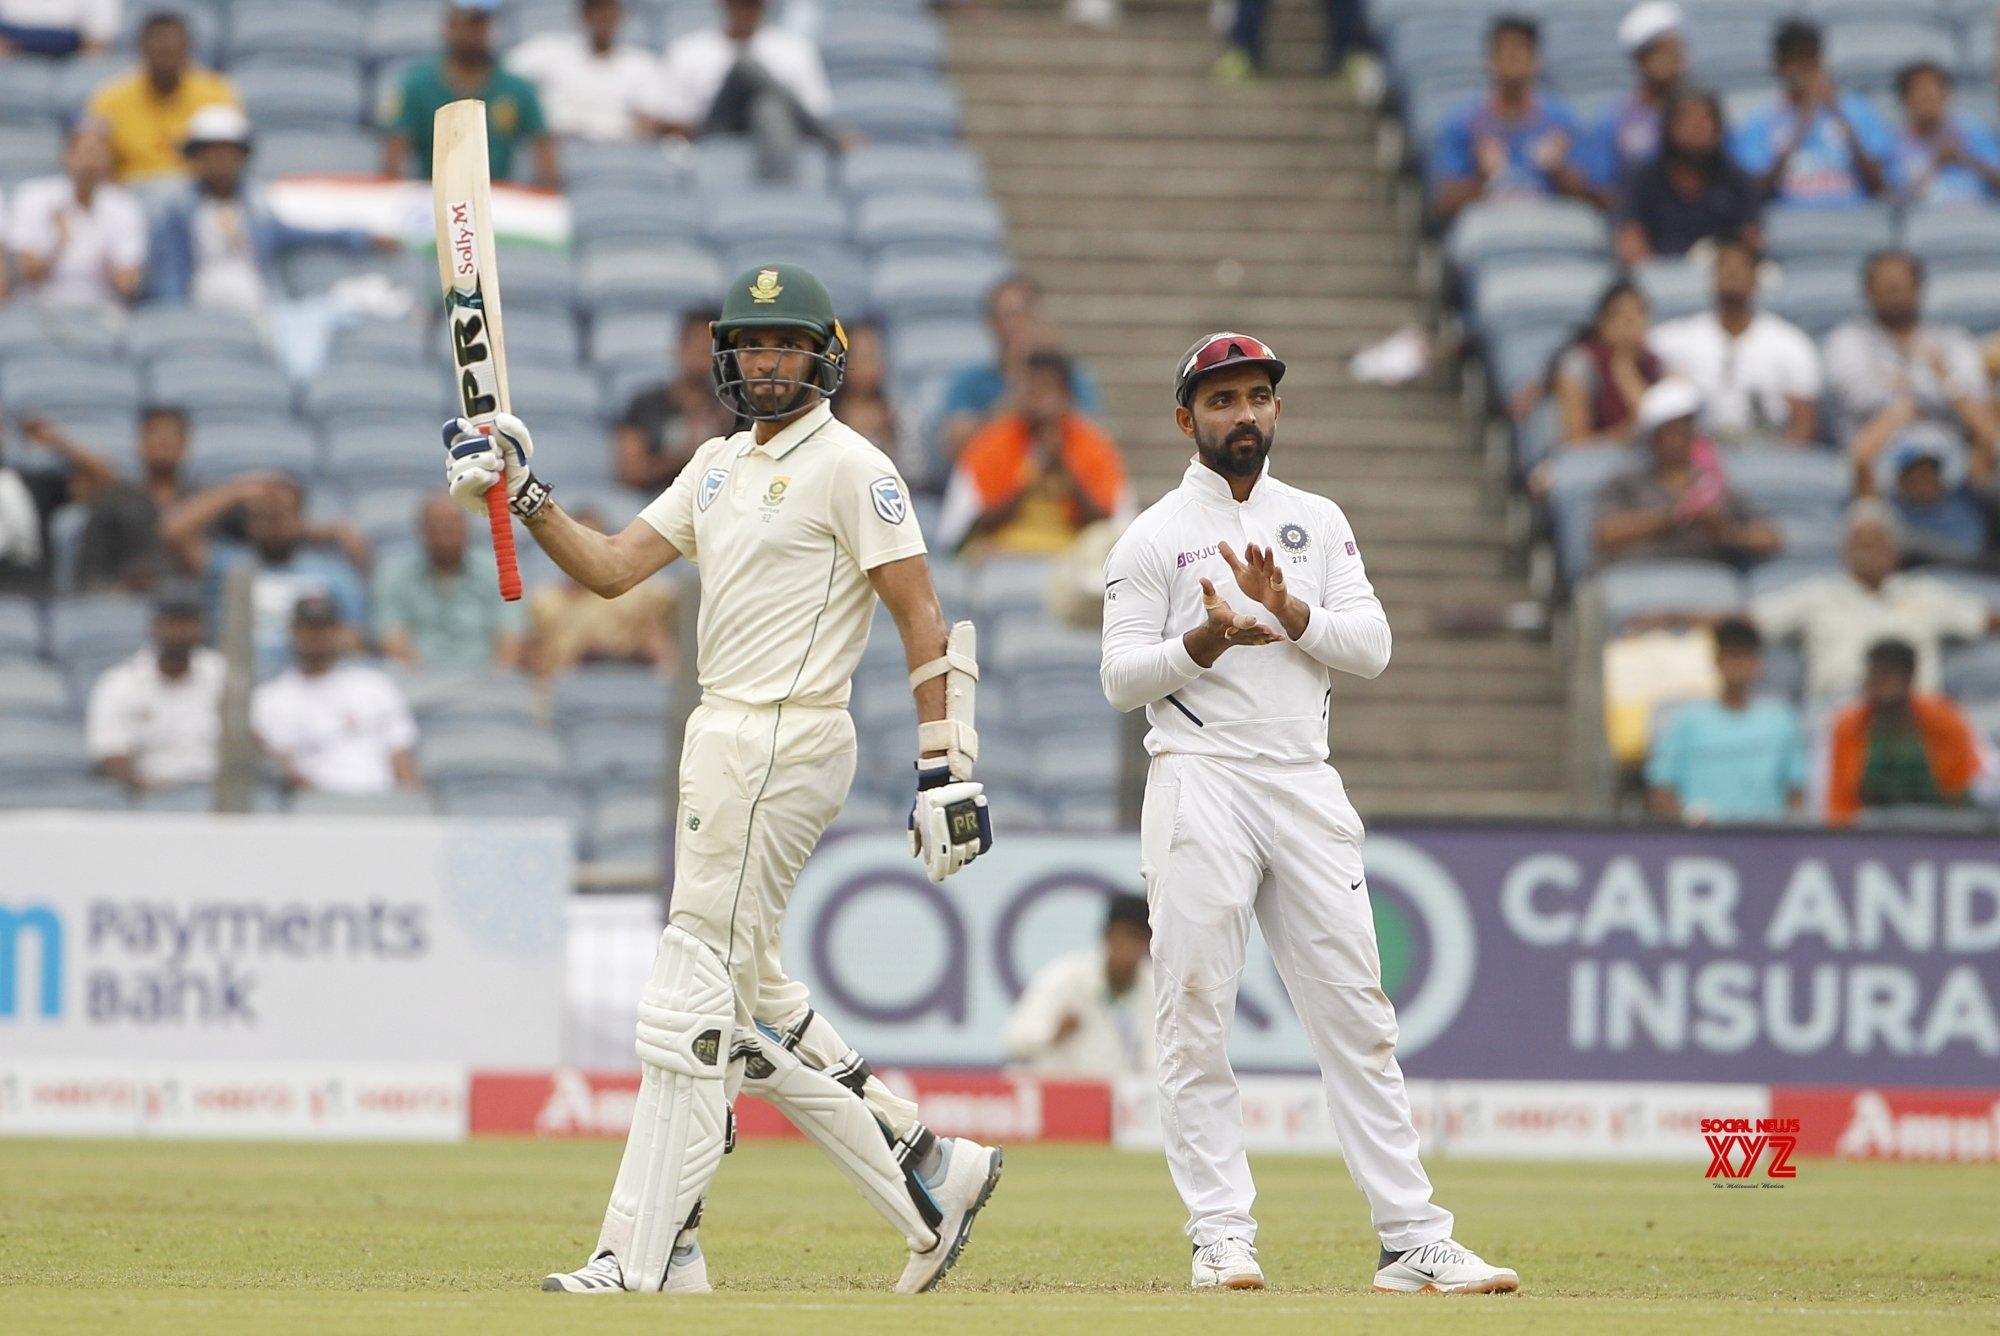 Pune: 2nd Test - India Vs South Africa - Day 3 (Batch - 18) #Gallery